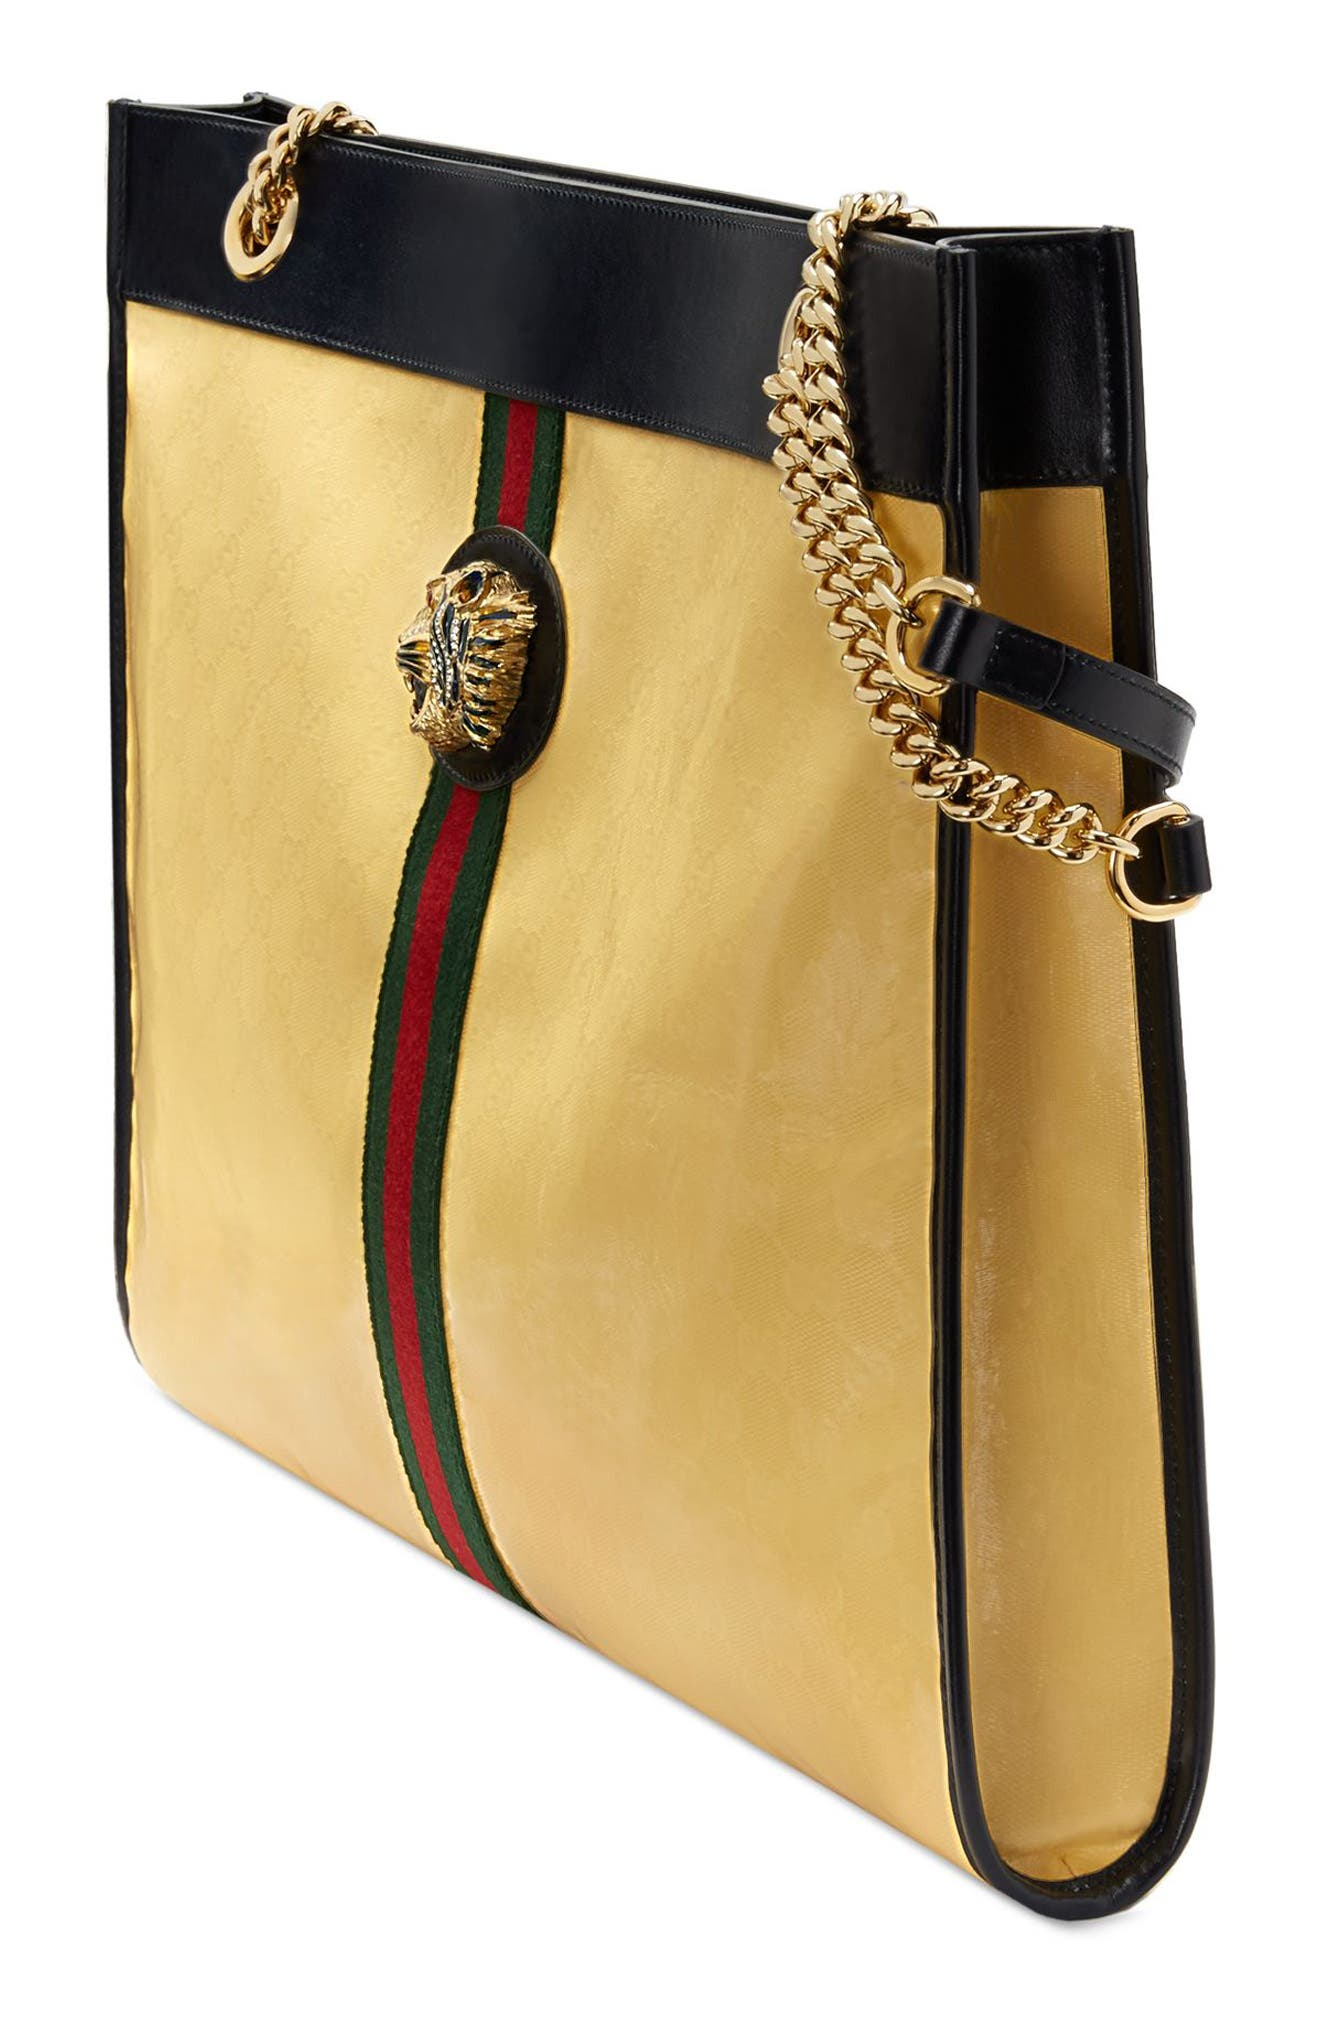 Rajah GG Supreme Canvas Tote,                             Alternate thumbnail 4, color,                             YELLOW/ BLACK/ BLUE/ RED